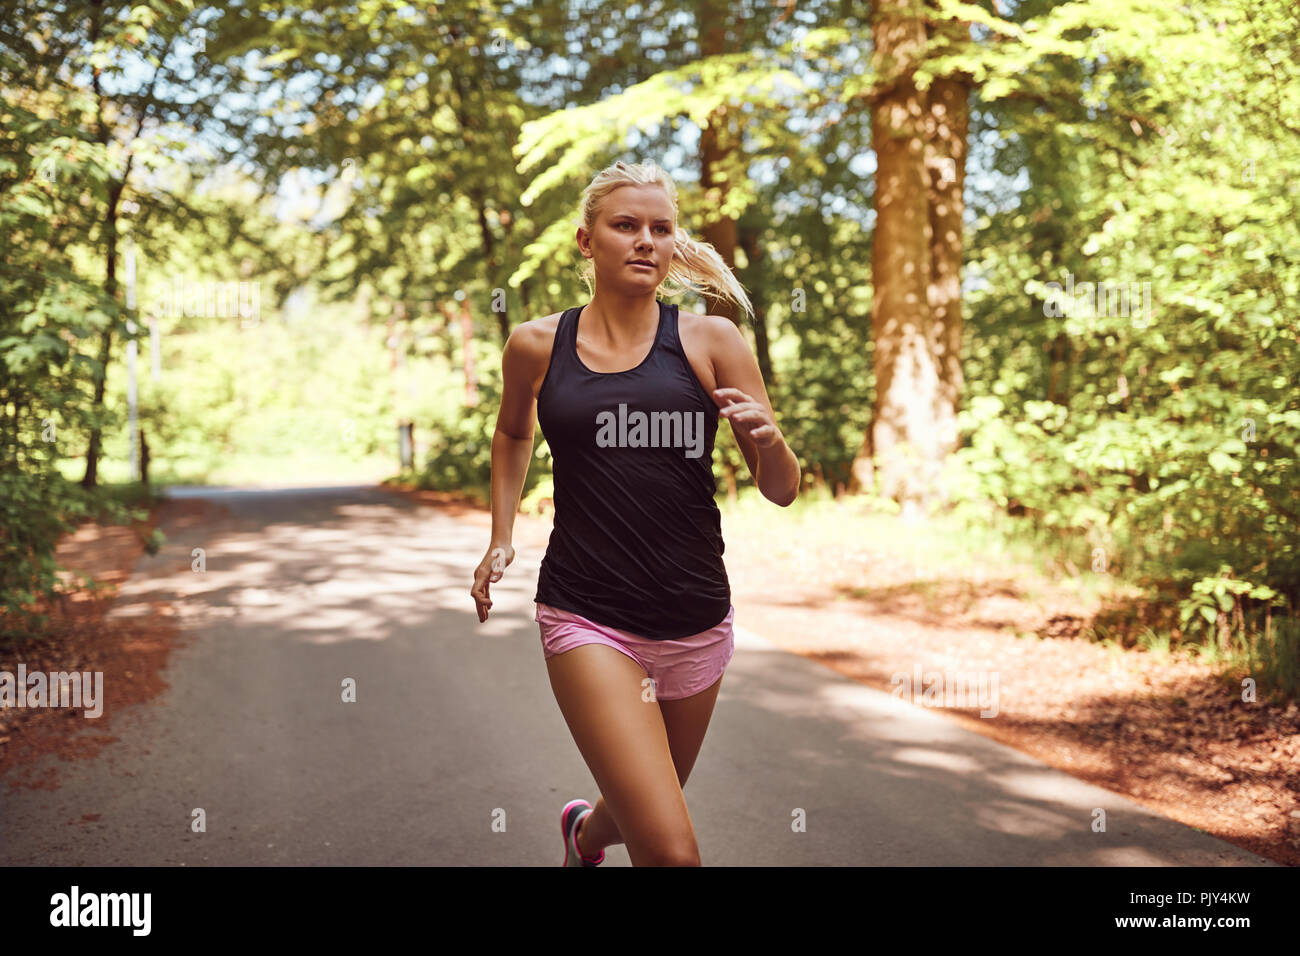 Fit Young Blonde Woman In Shorts And A Tanktop Jogging Alone On A Path Through A Forest On A Sunny Day Stock Photo Alamy One of many great free stock photos from pexels. https www alamy com fit young blonde woman in shorts and a tanktop jogging alone on a path through a forest on a sunny day image218184621 html